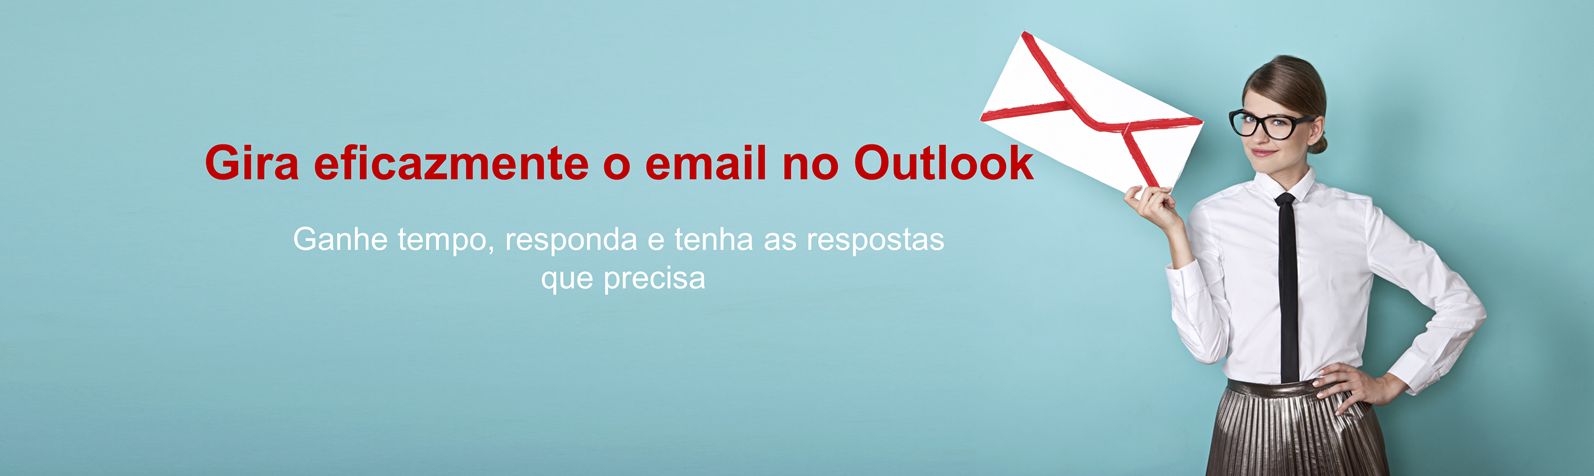 ol-curso-online-email-outlook-2